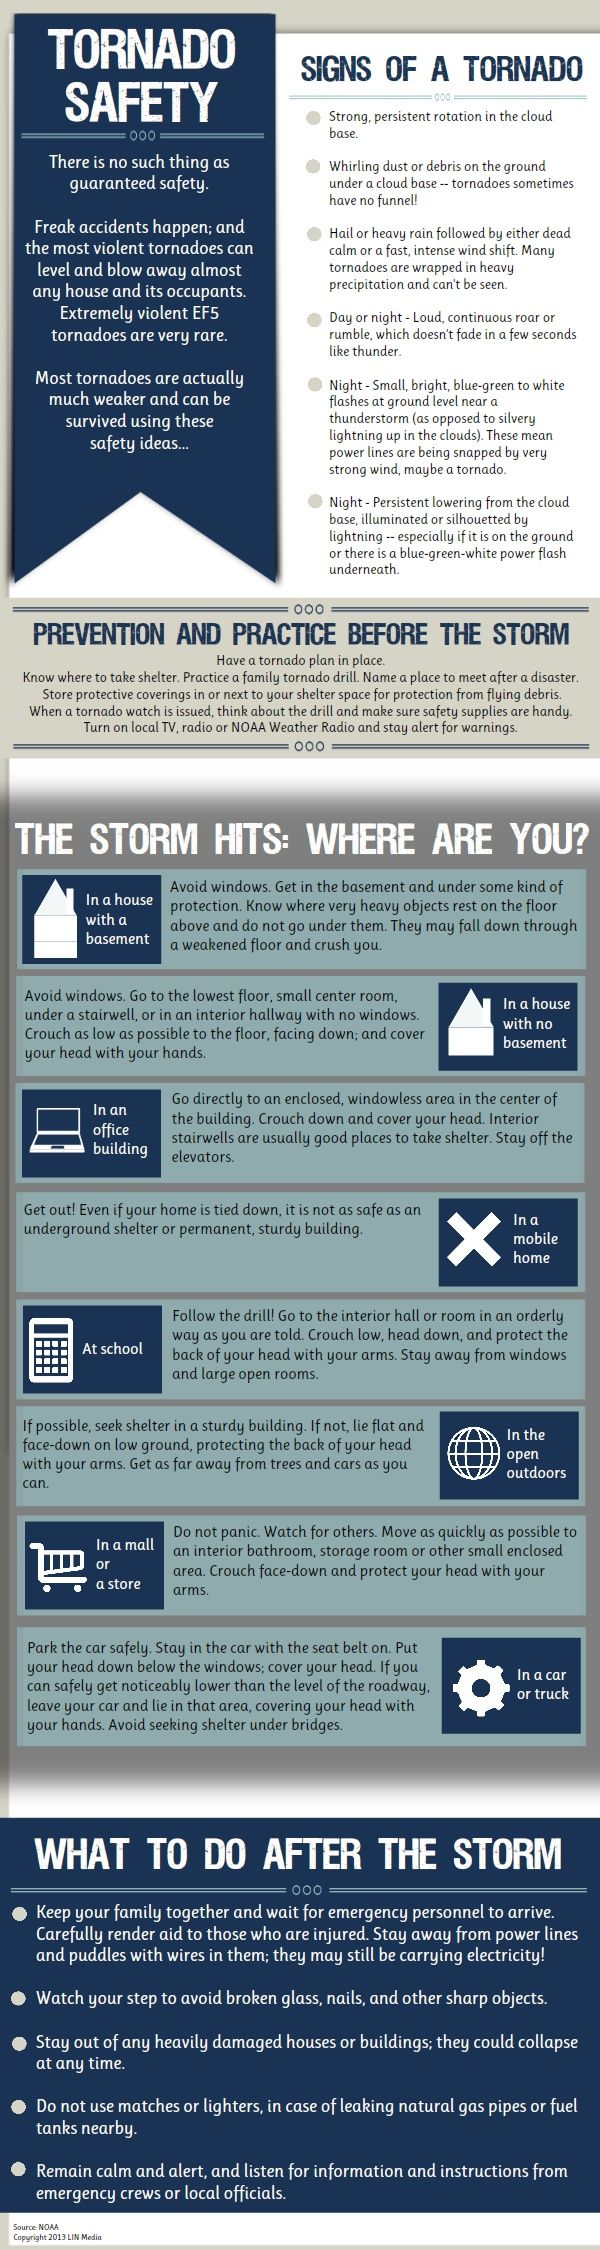 INFOGRAPHIC: Tornado Safety. Where are you when the storm hits, and what's the best response?